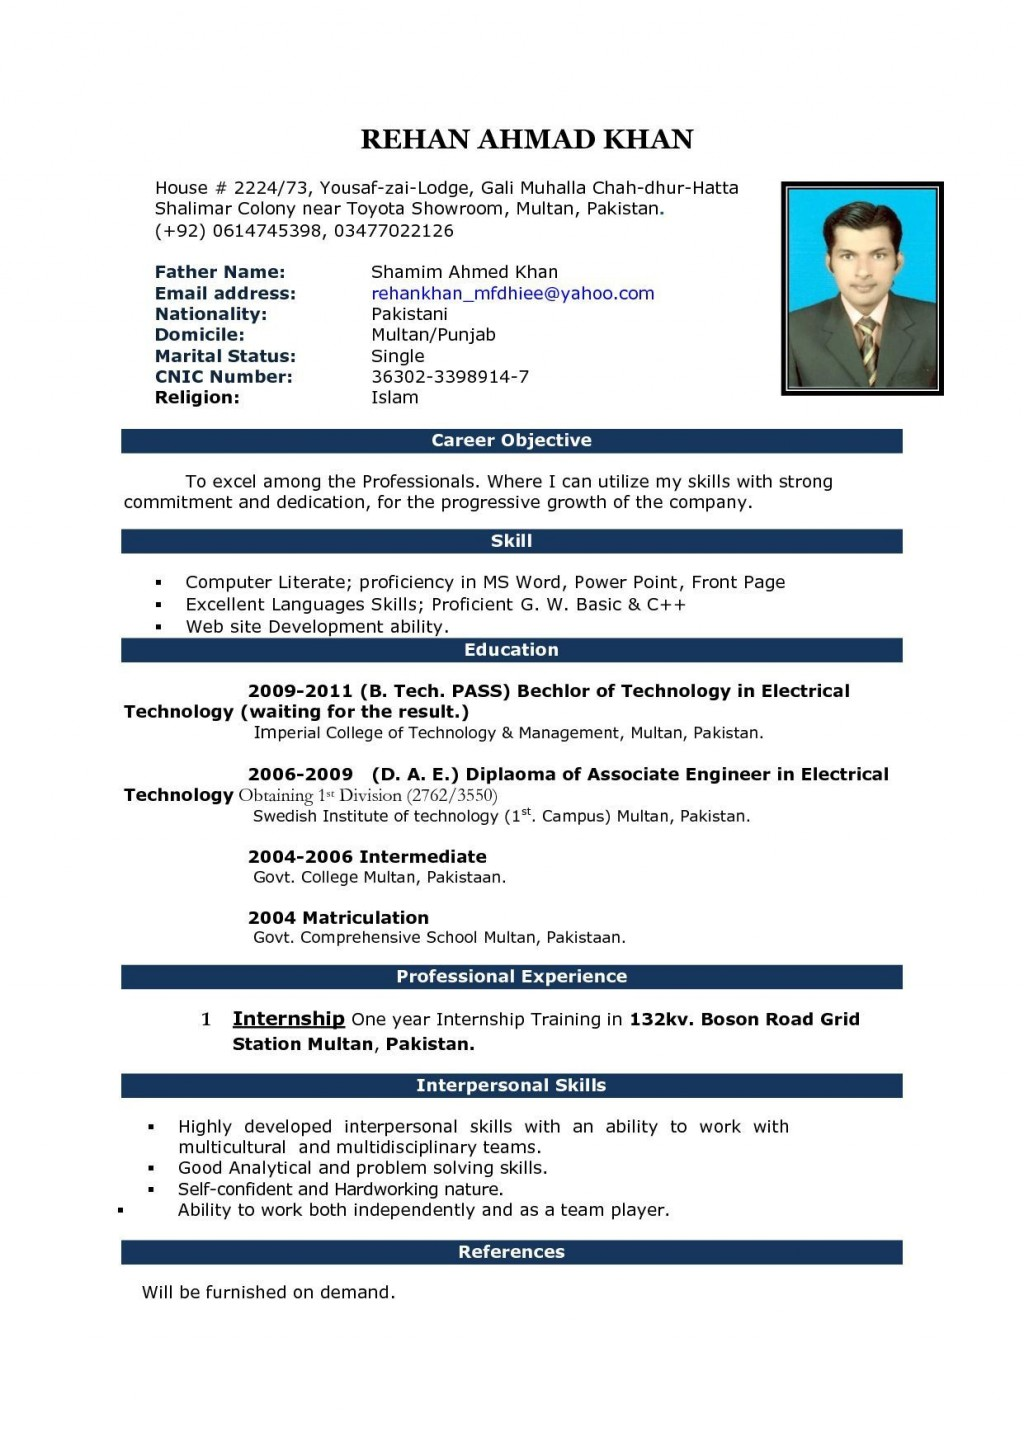 003 Singular Simple Resume Template Download In M Word Inspiration Large